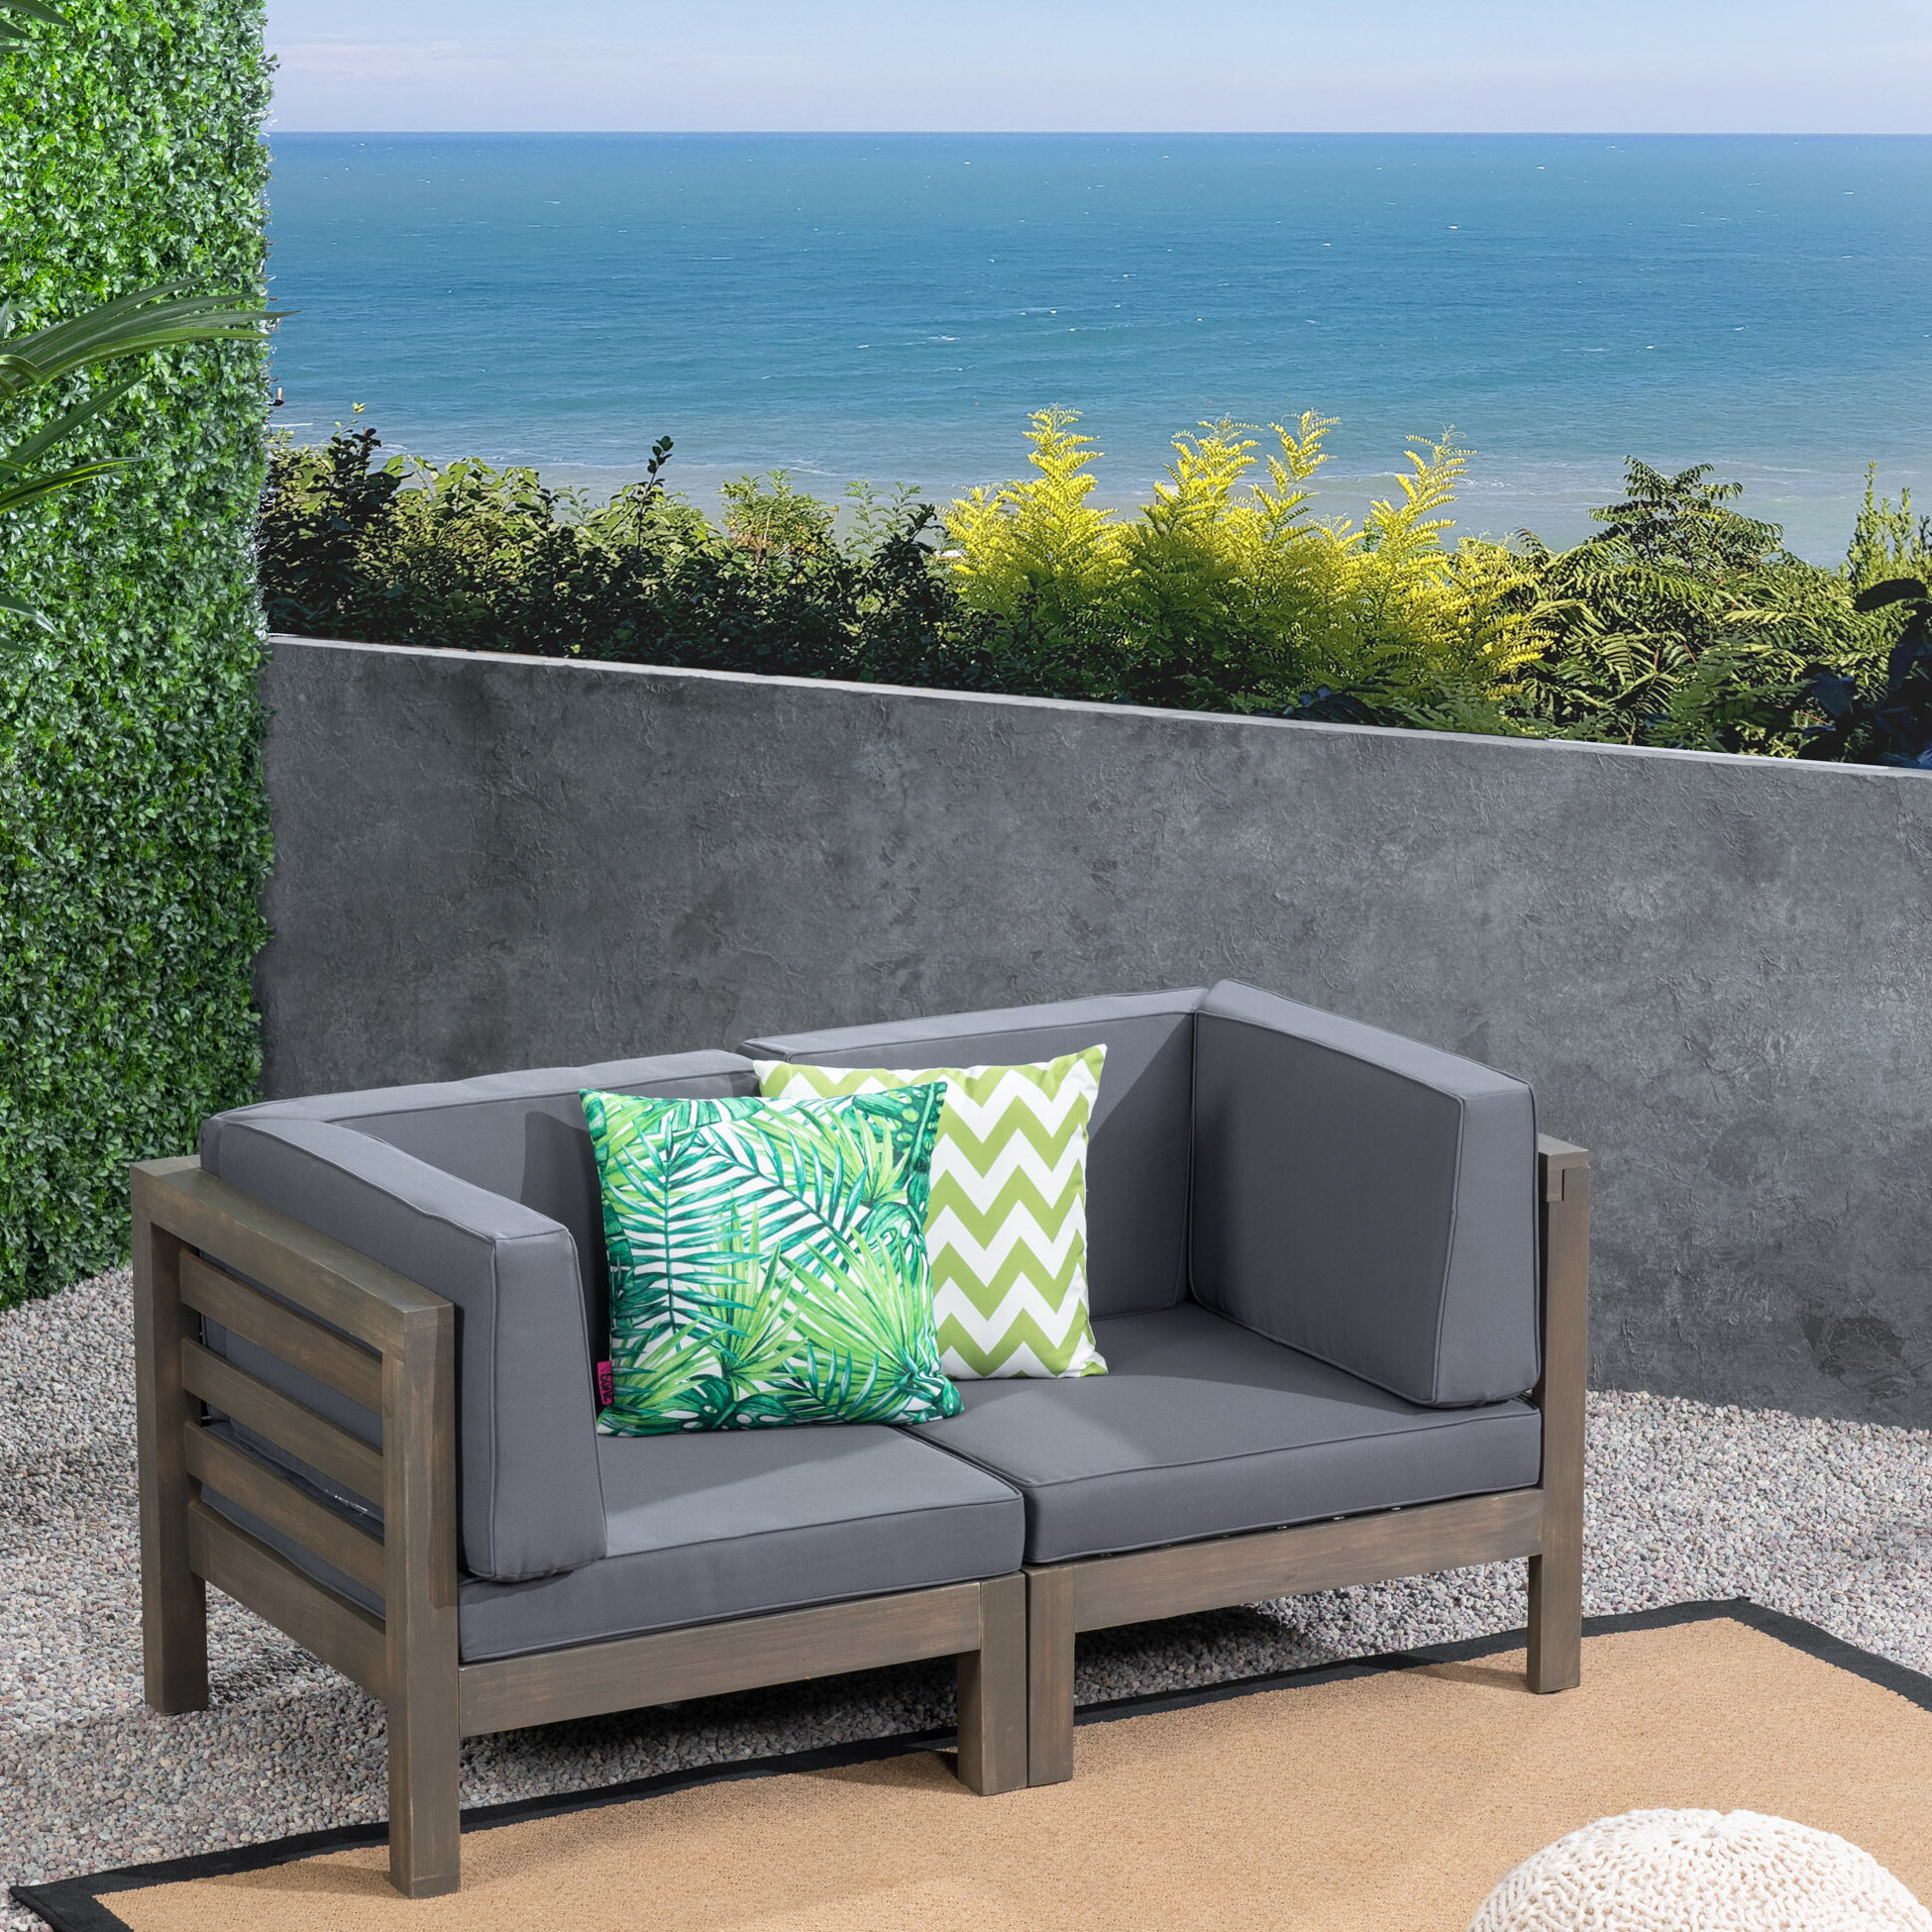 Most Popular Baltic Loveseats With Cushions Intended For Seaham Loveseat With Cushions (View 24 of 25)